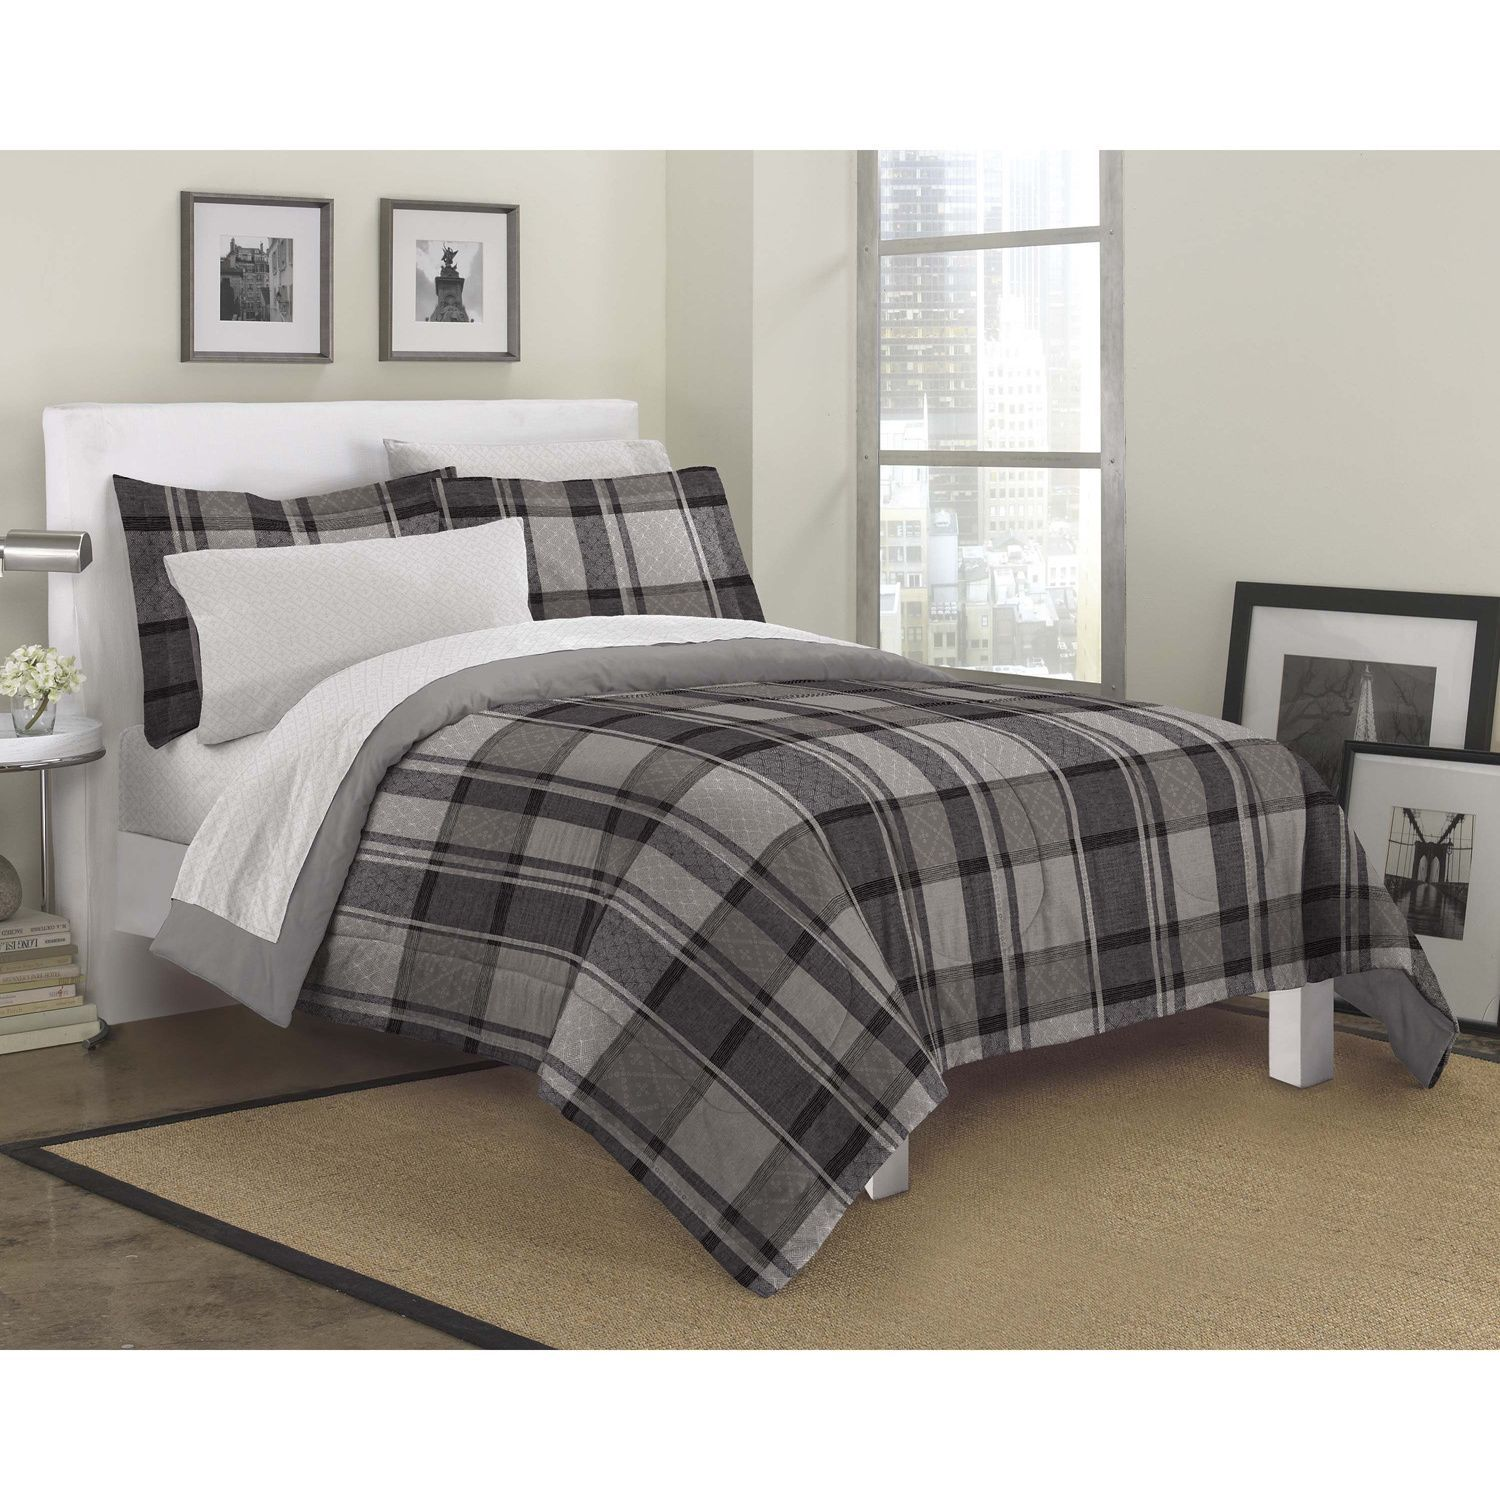 comforter materials lodge luxurious set ecrins grey dark red most for